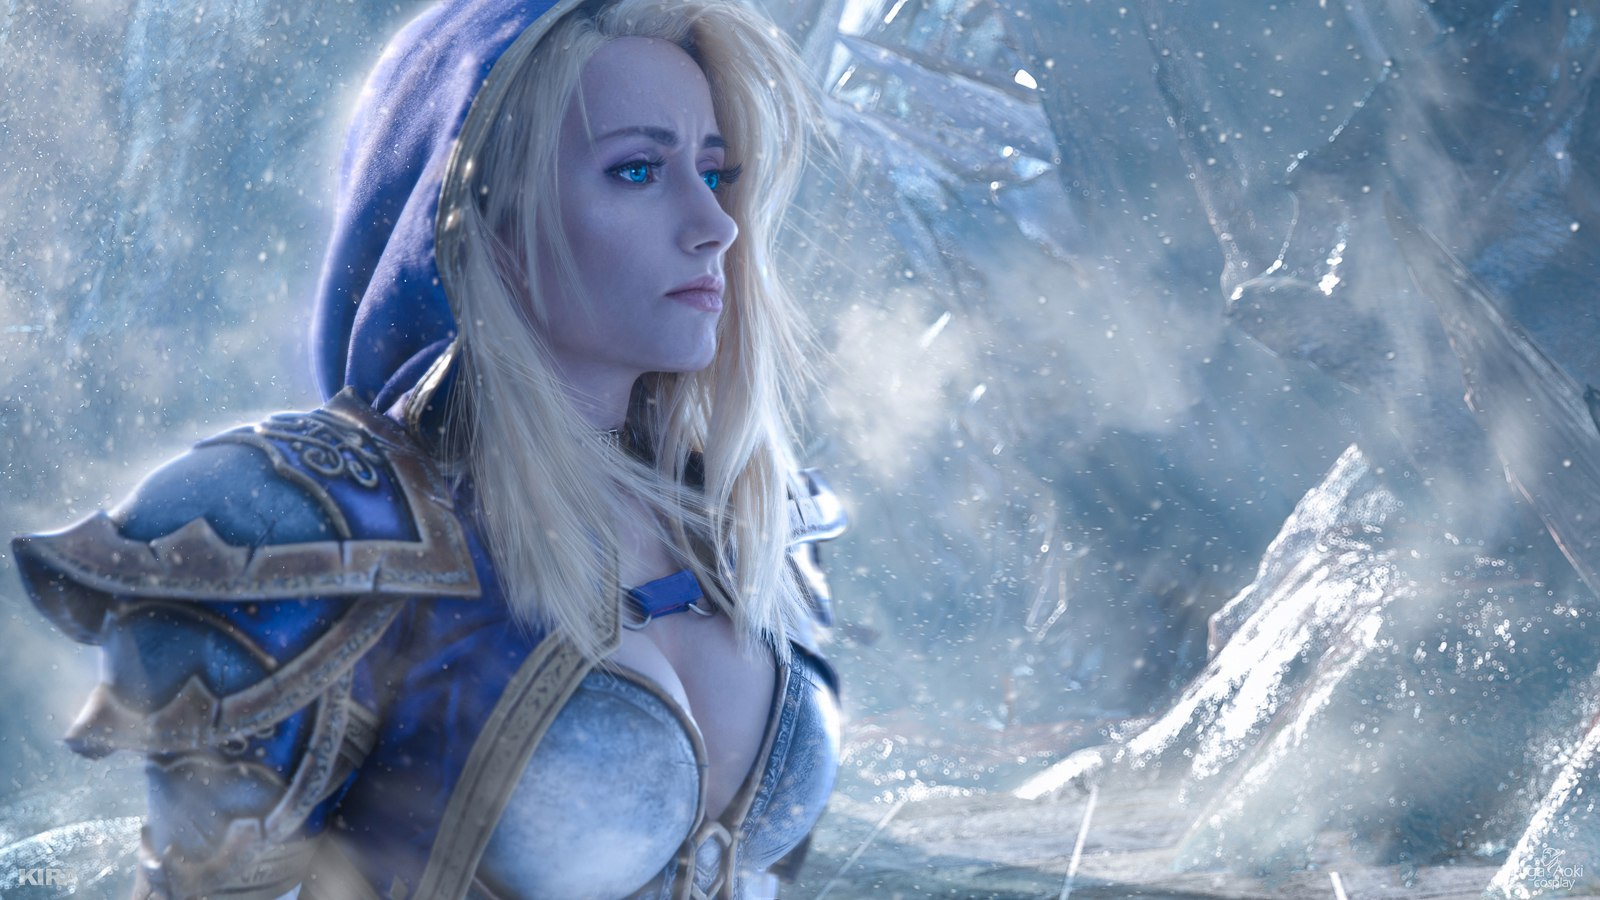 World of Warcraft: Arthas and Jaina Frozen Throne Cosplay by Aoki and Narga